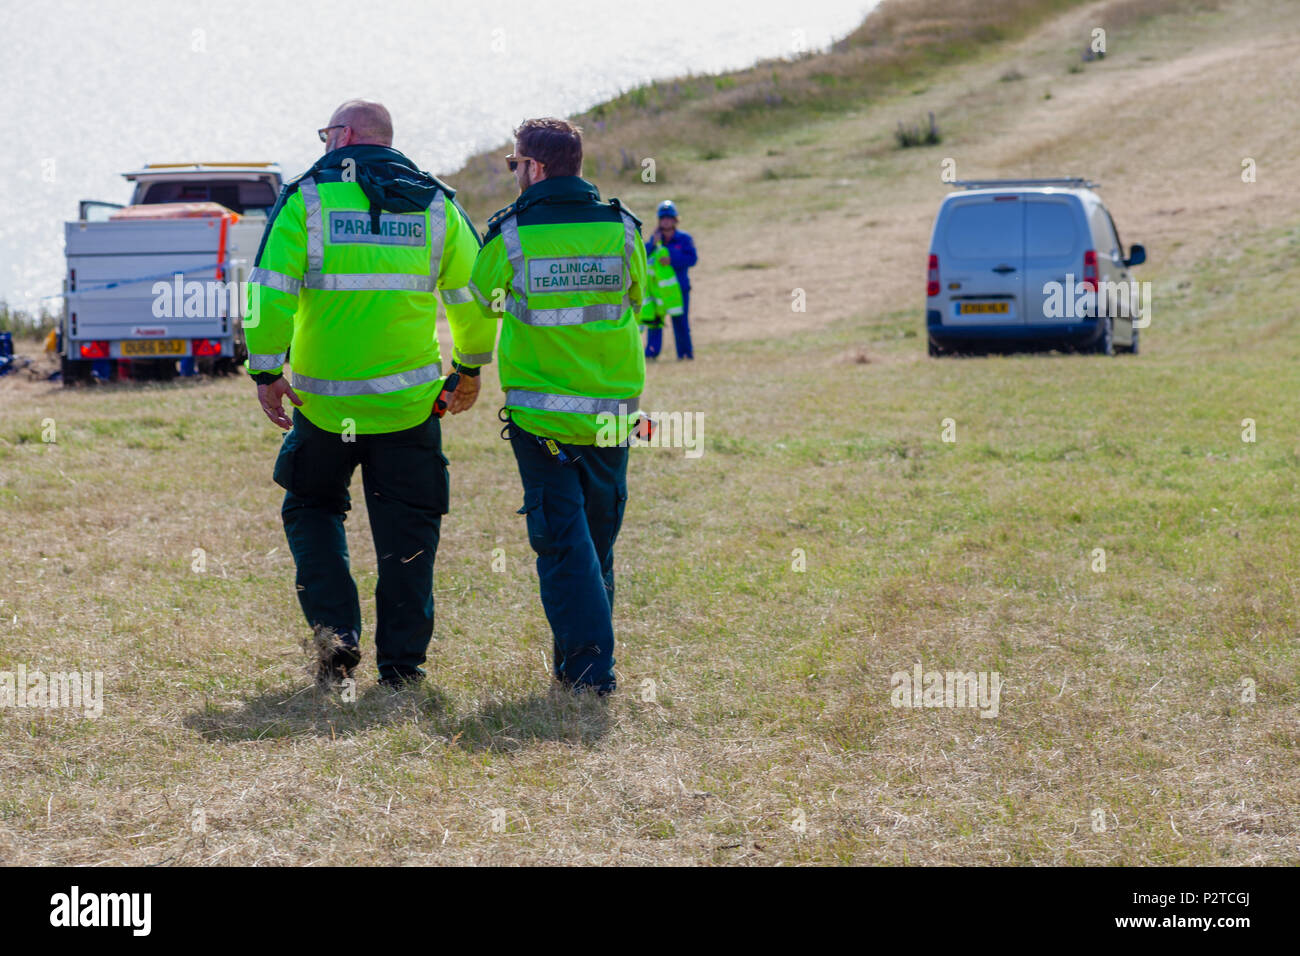 Beachy Head Sussex UK June13th 2018; Paramedics arrive on scene to assist HM Coastguard at Beachy Head in Sussex - Stock Image